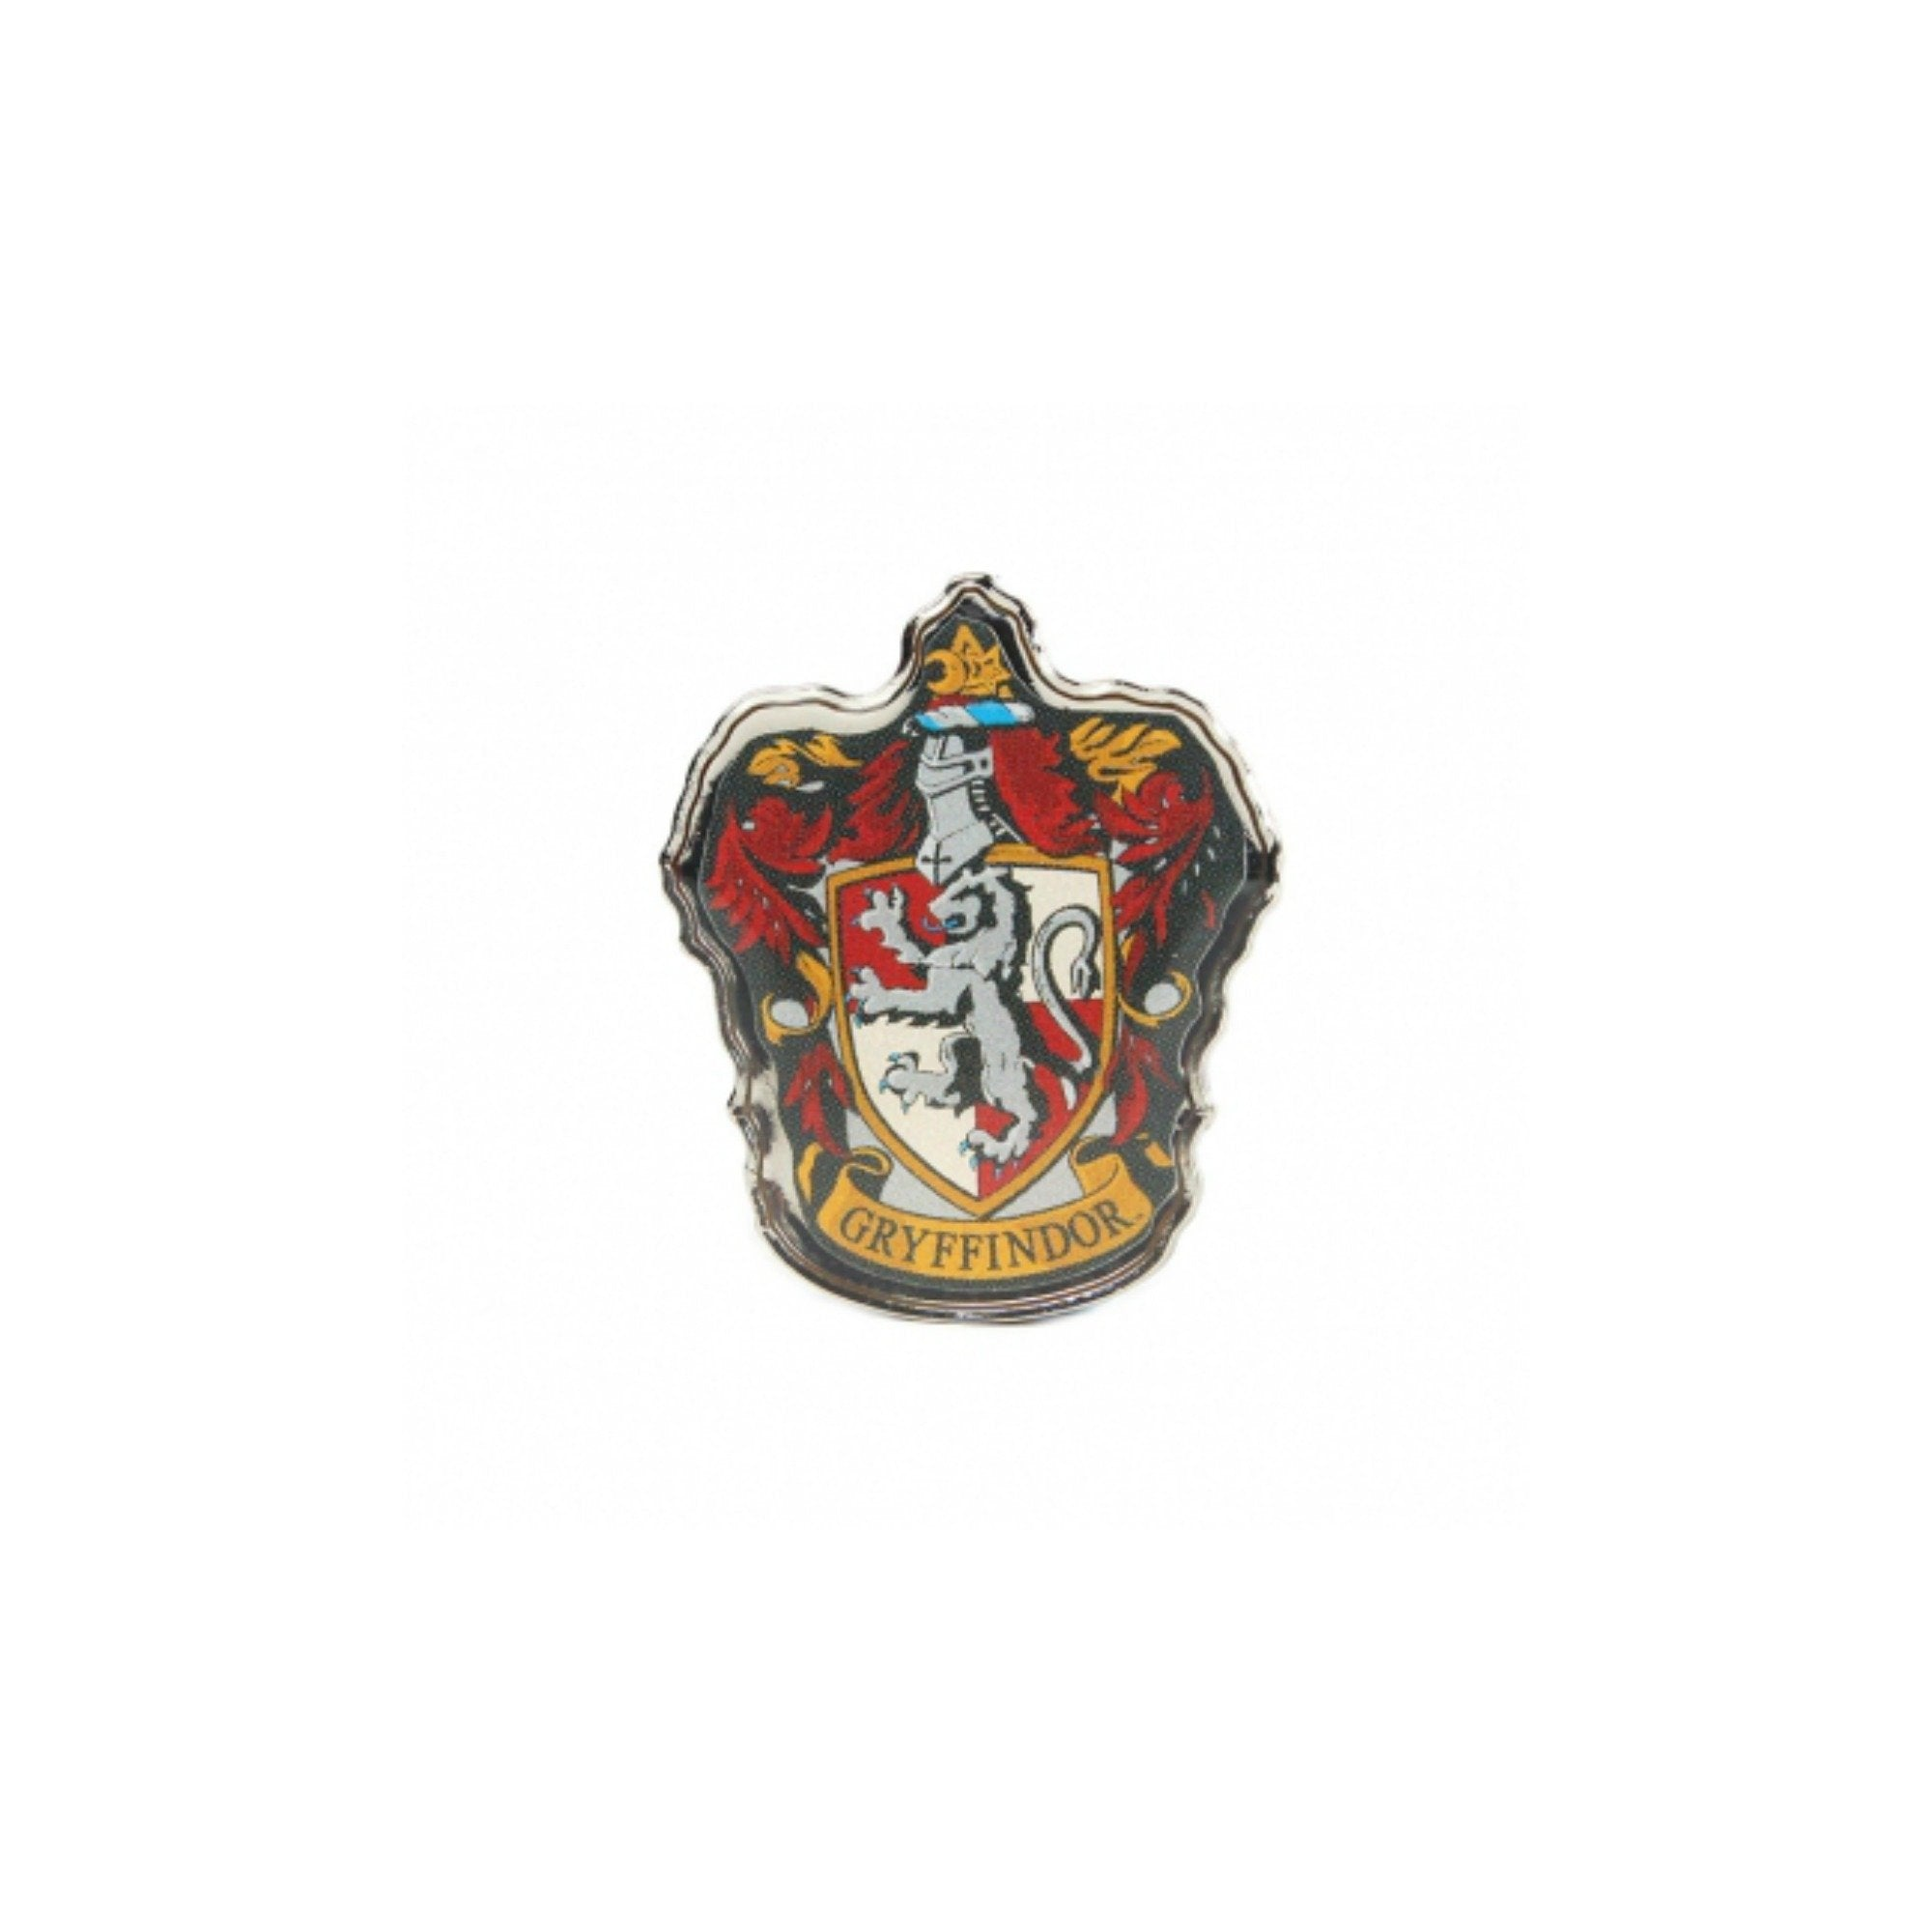 Harry Potter Gryffindor Lapel Pin Badge - Minimum Mouse